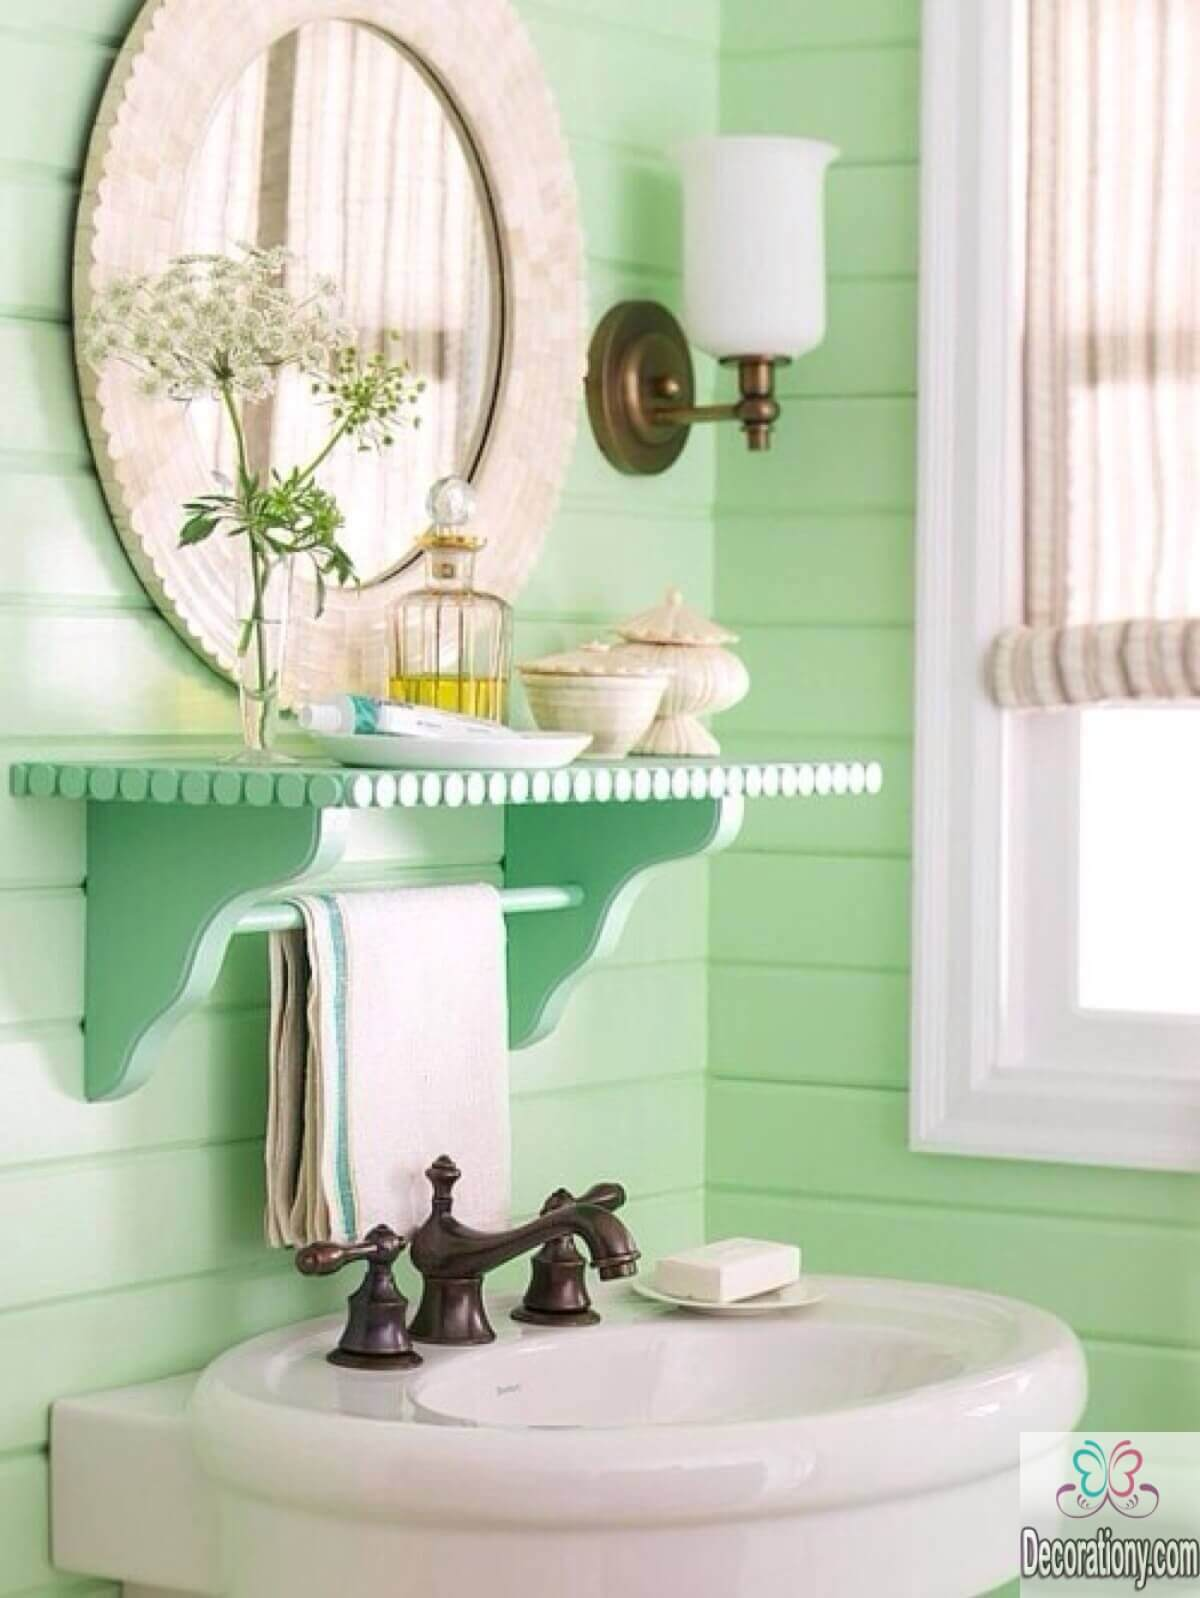 10 affordable colors for small bathrooms decoration y for Small bath ideas